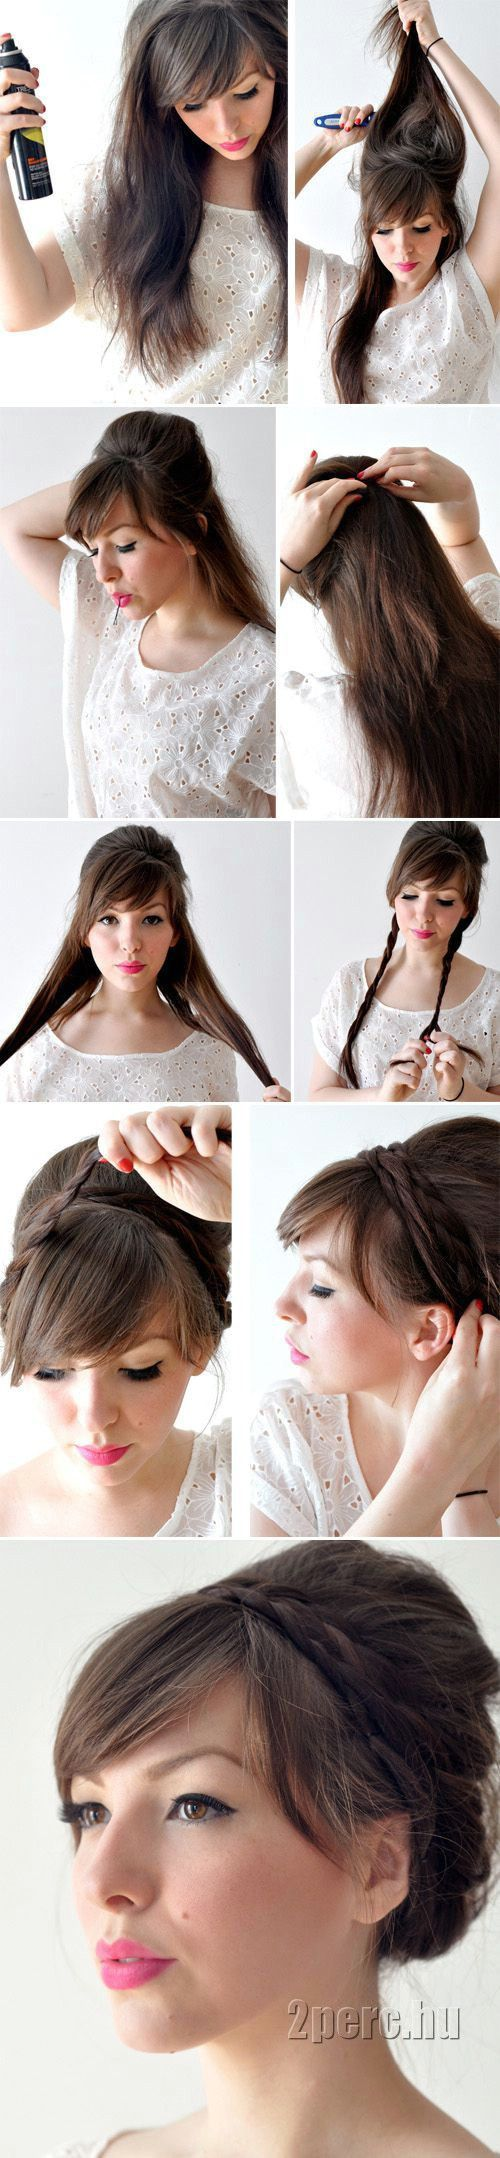 diy hair idea braided updo: Diy Hairstyles, Hair Ideas, Up Dos, Braids Updo, Makeup, Long Hair, Updos, Hair Style, Braids Hair